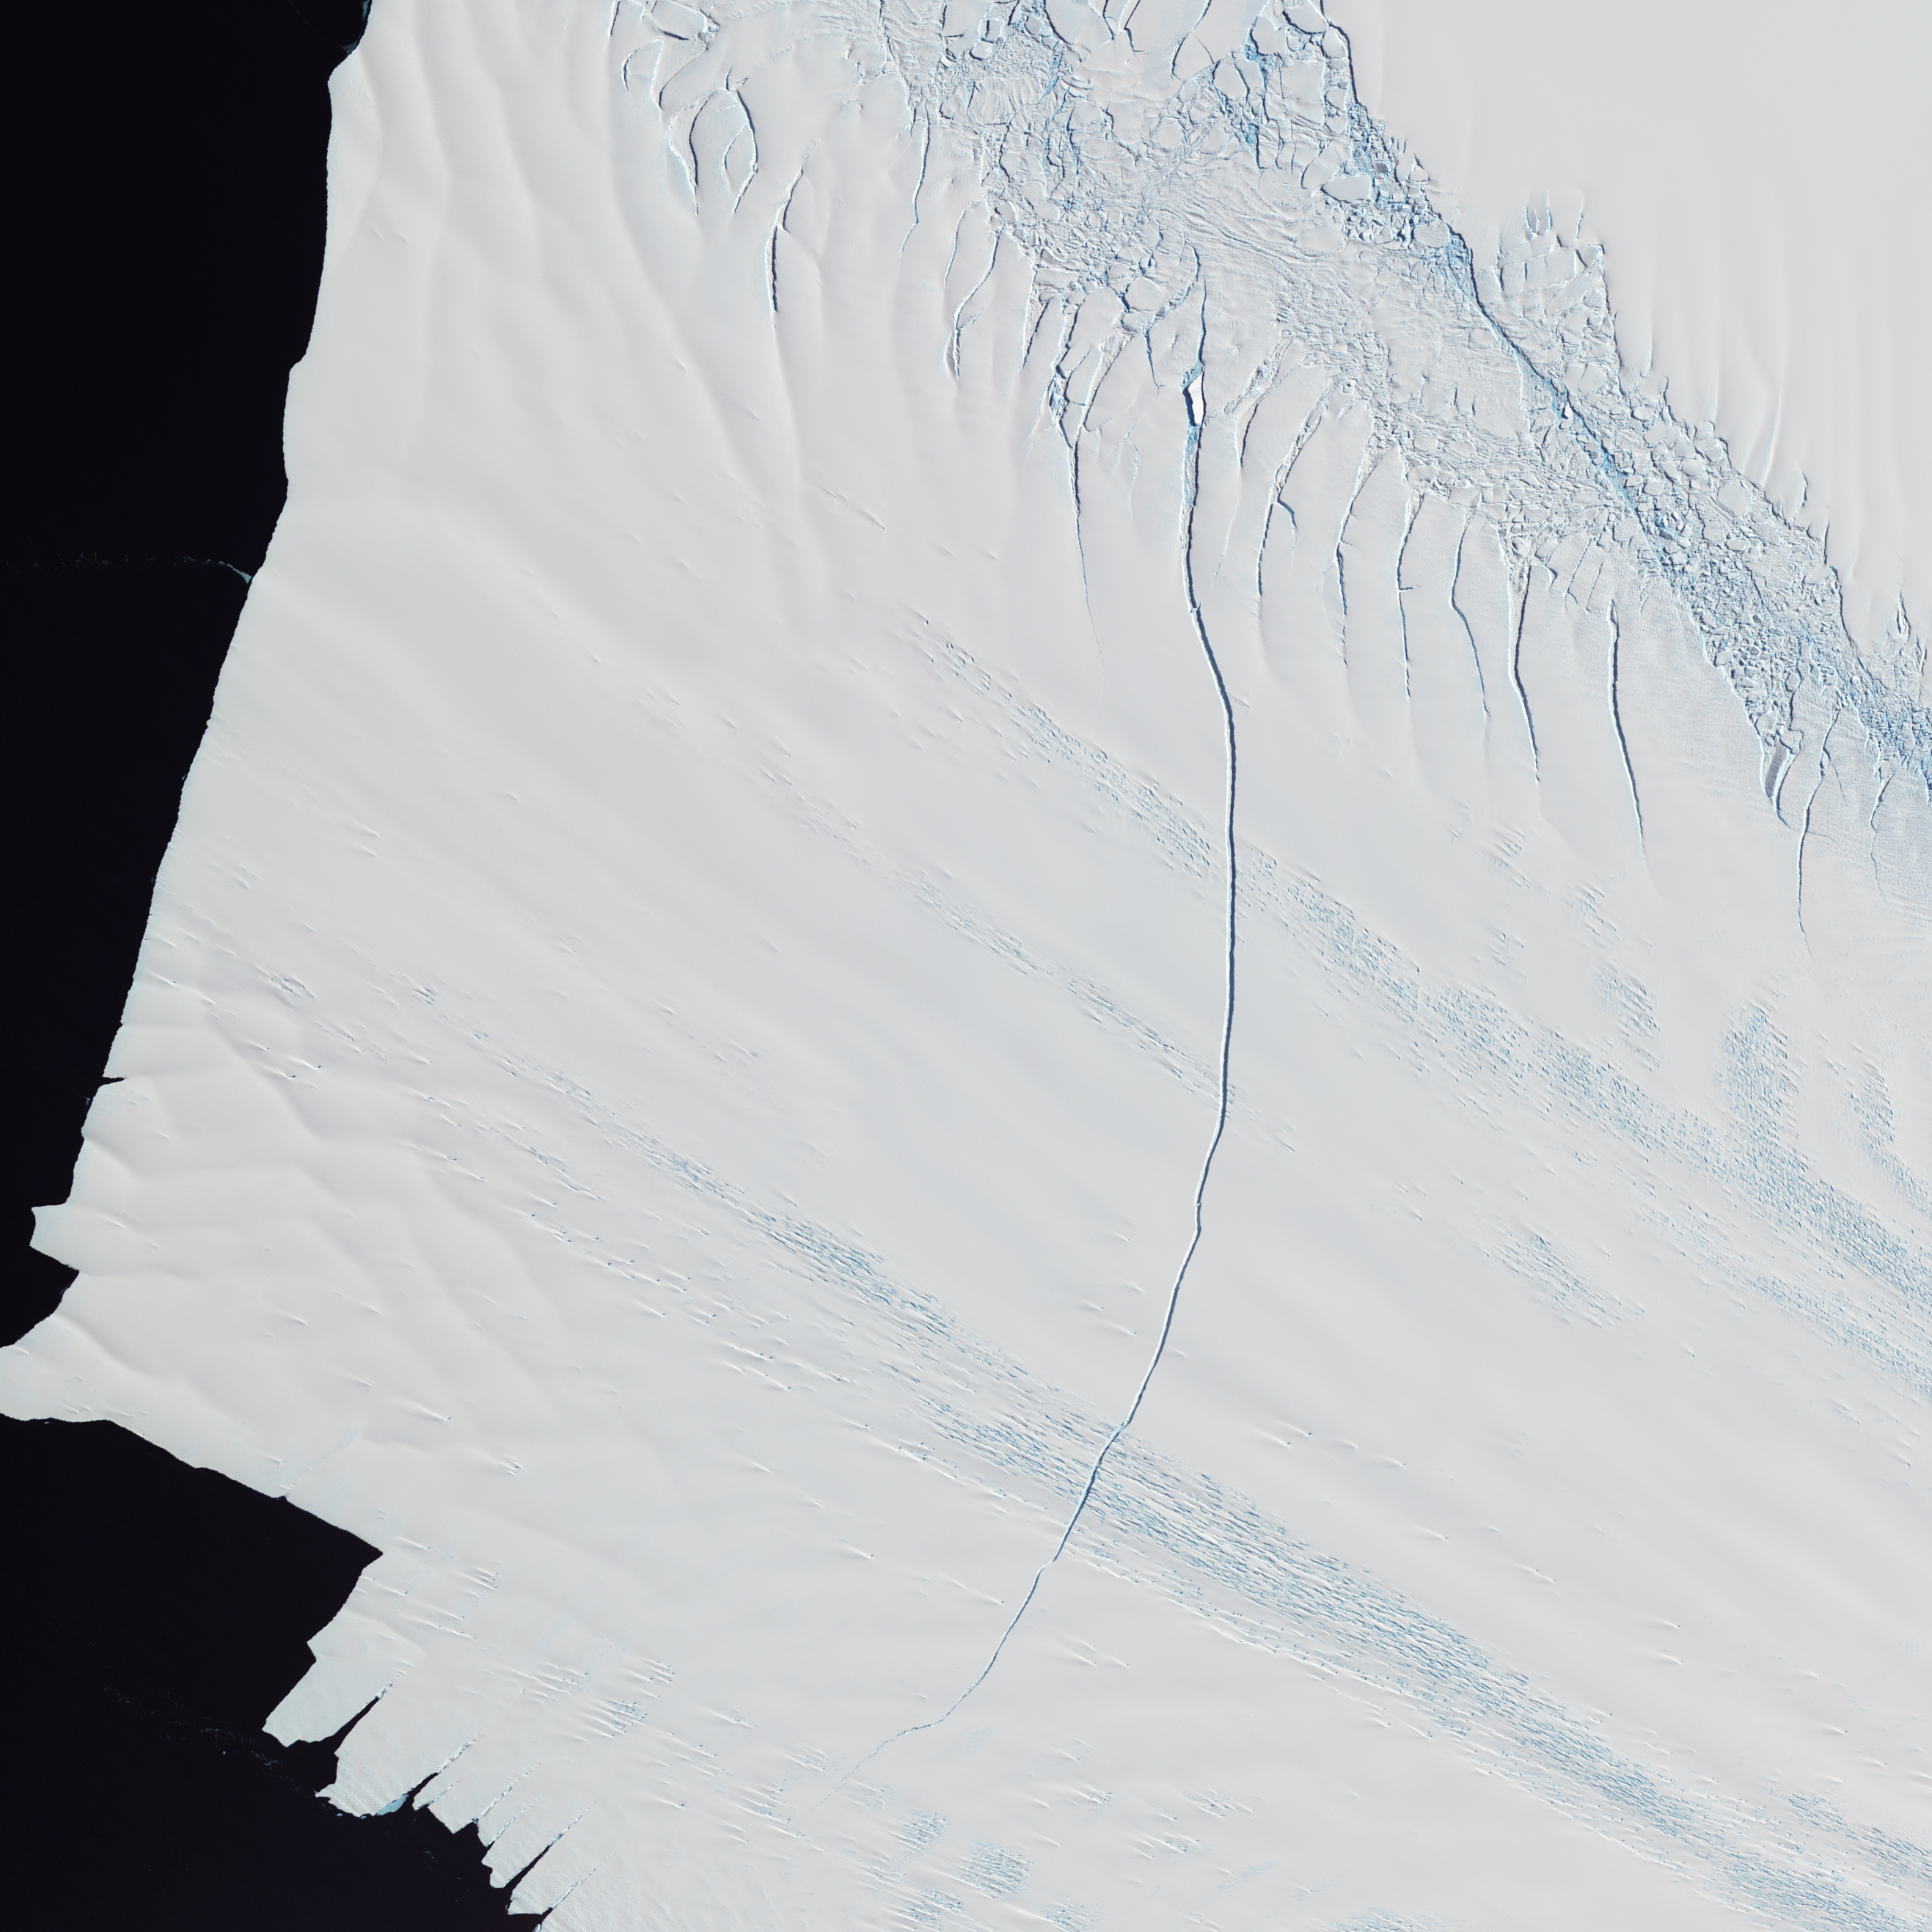 Crack in the Pine Island Glacier